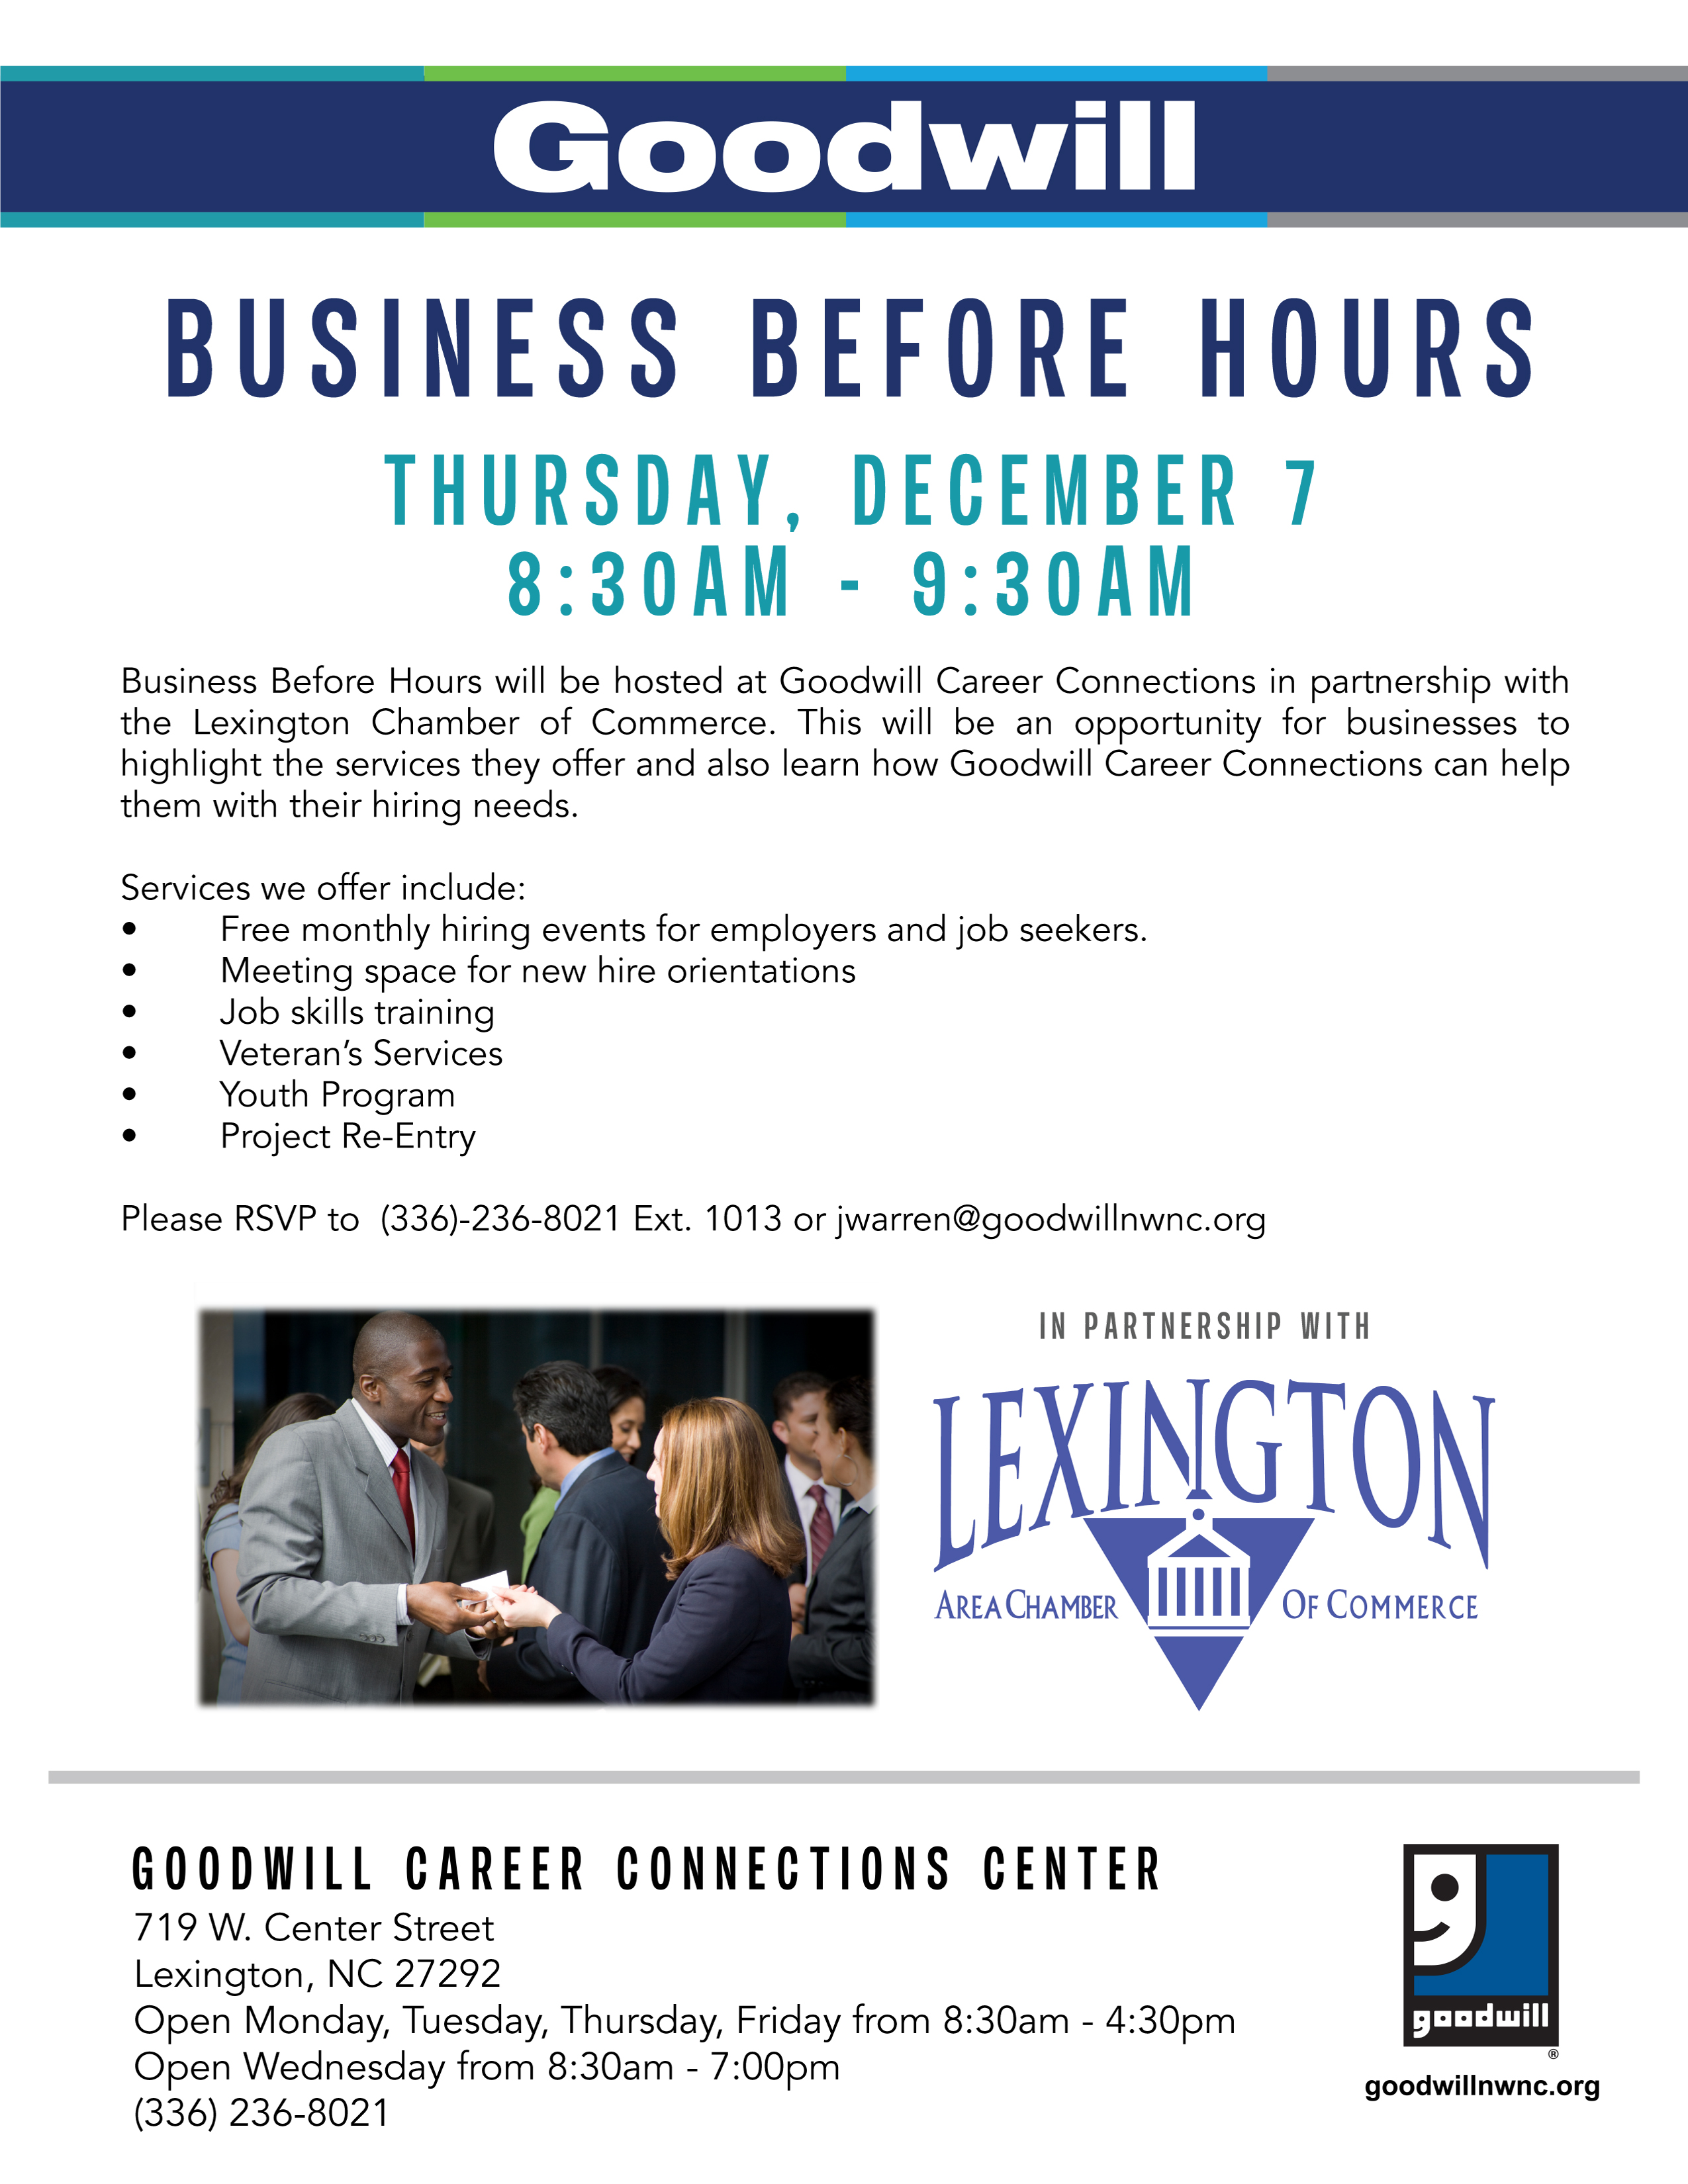 Business Before Hours Goodwill Career Connections